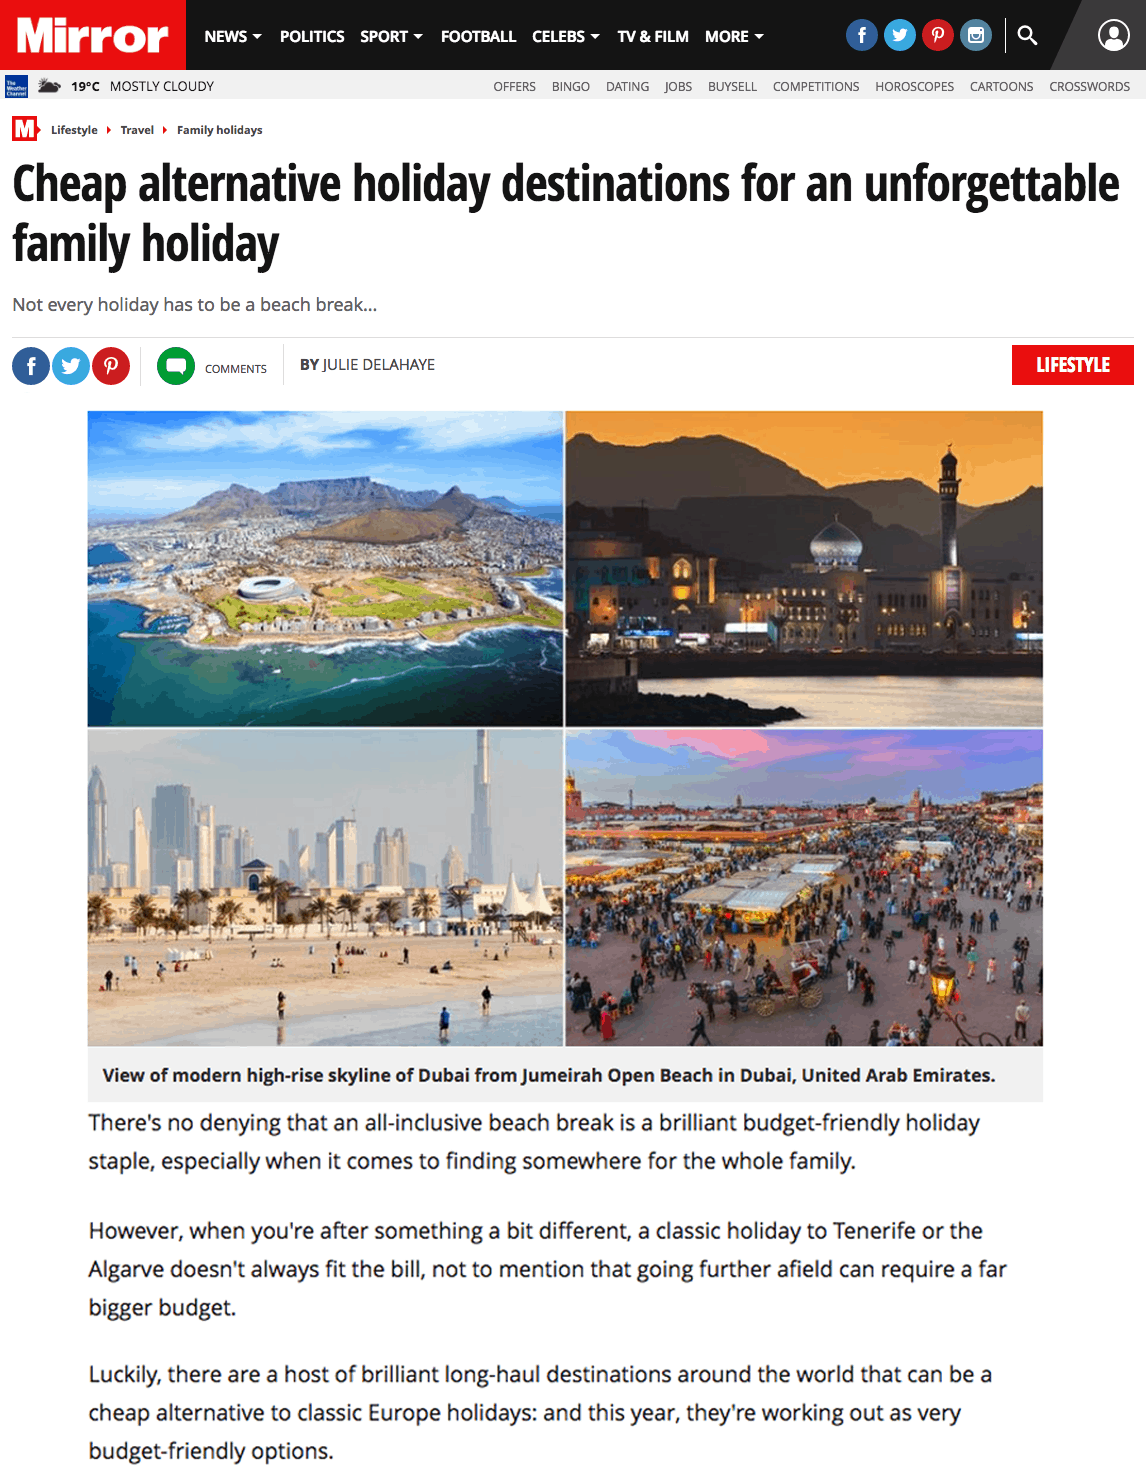 Cheap alternative holiday destinations for an unforgettable family holiday